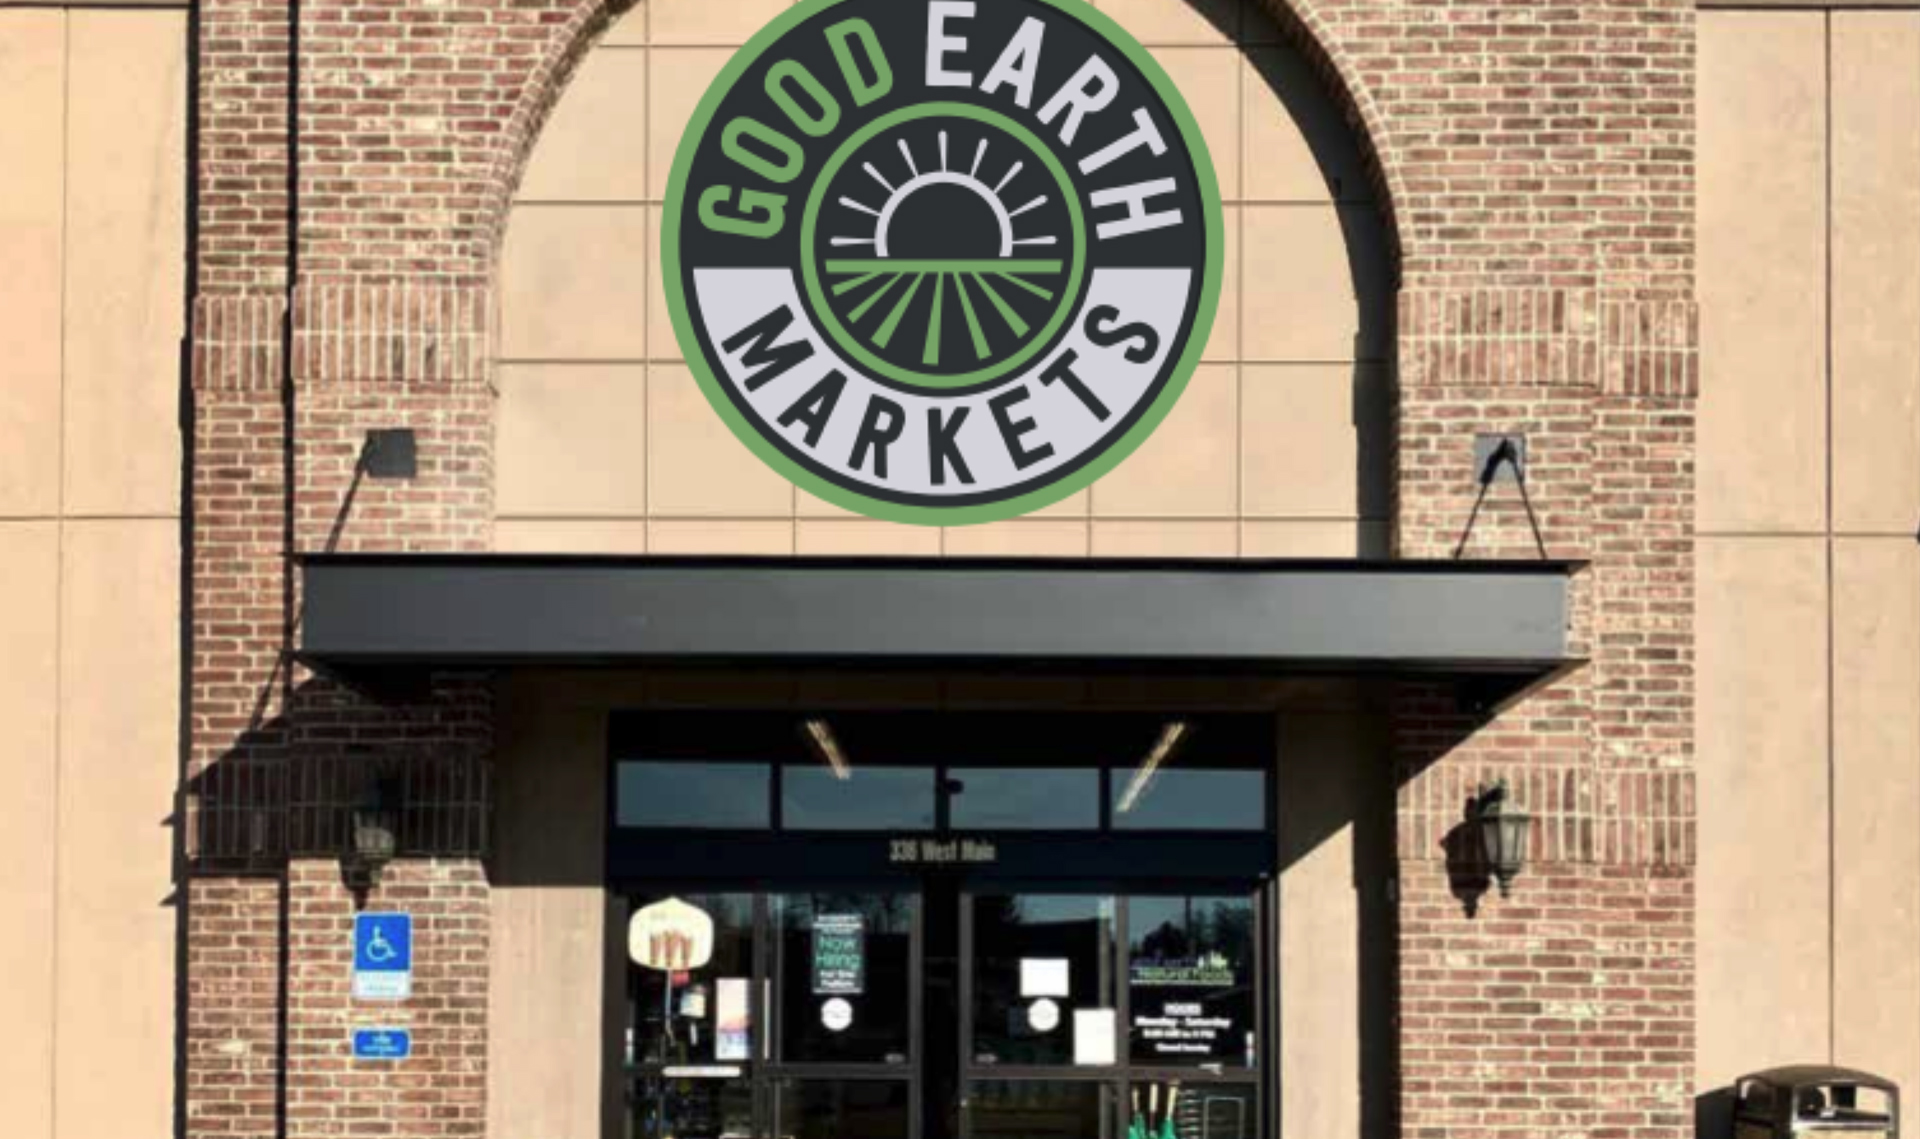 Good Earth Markets Store Front American Fork